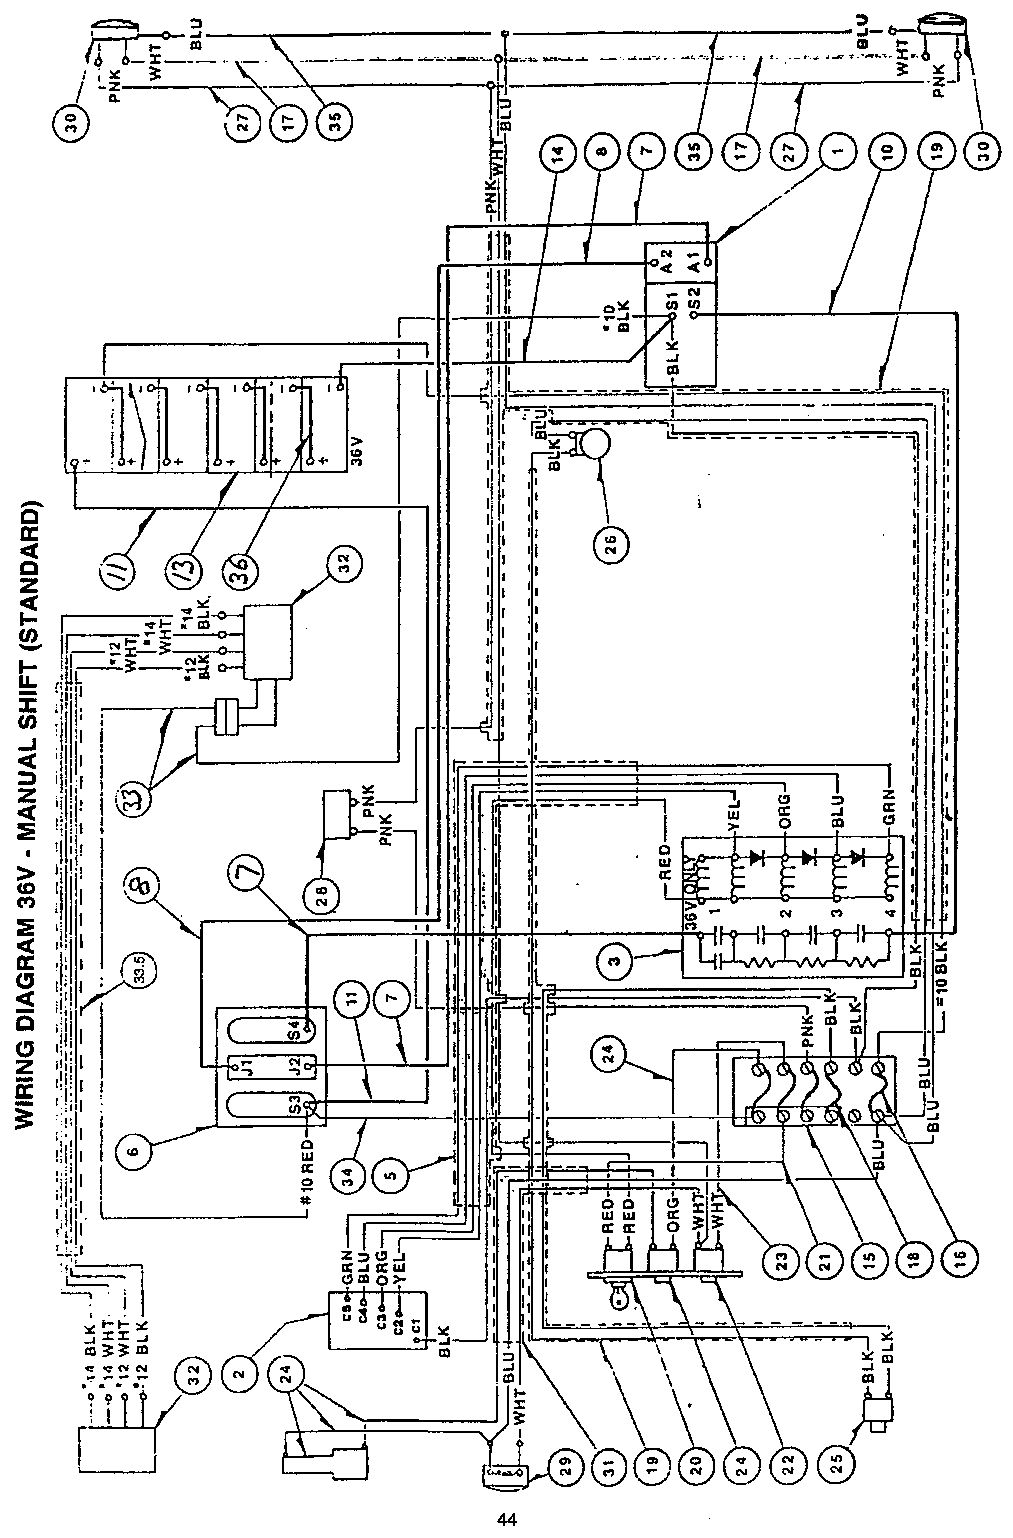 Tomberlin Emerge Motor Wiring. Diagram. Wiring Diagram Images